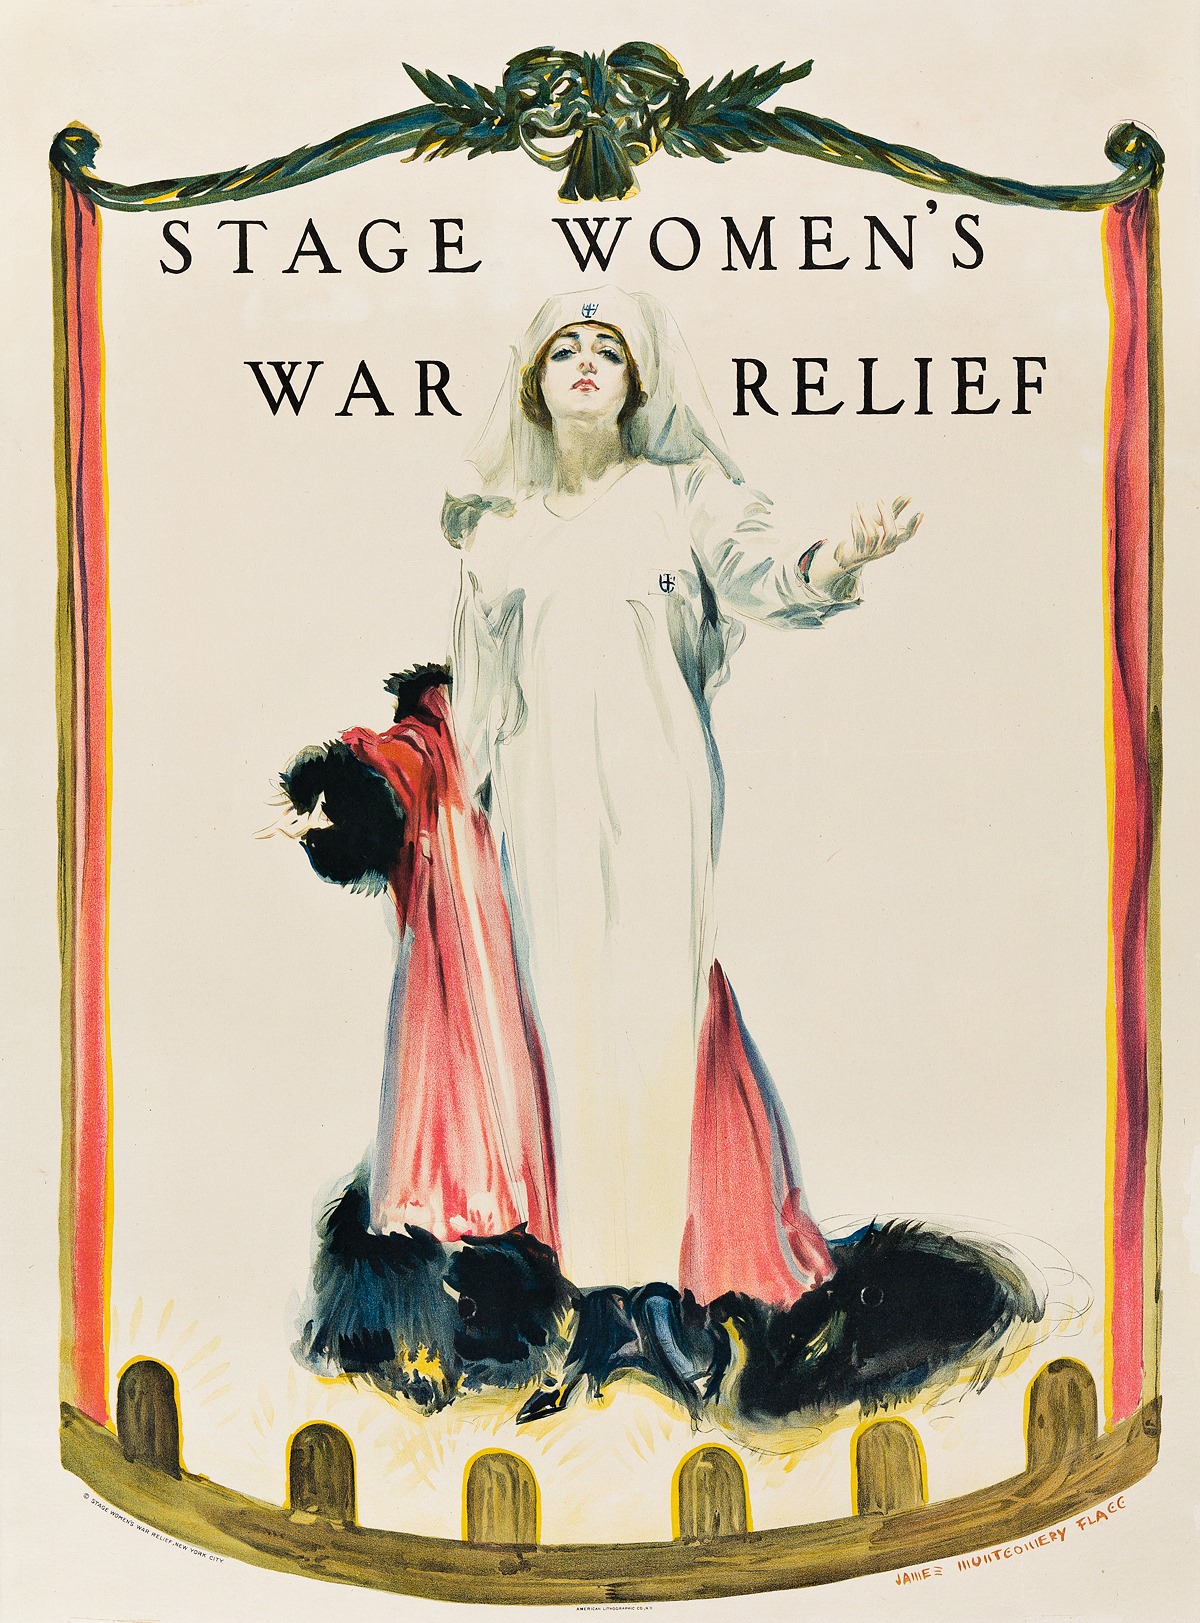 JAMES-MONTGOMERY-FLAGG-(1870-1960)-STAGE-WOMENS-WAR-RELIEF-1918-29x21-inches-74x55-cm-American-Lithographic-Co-New-York